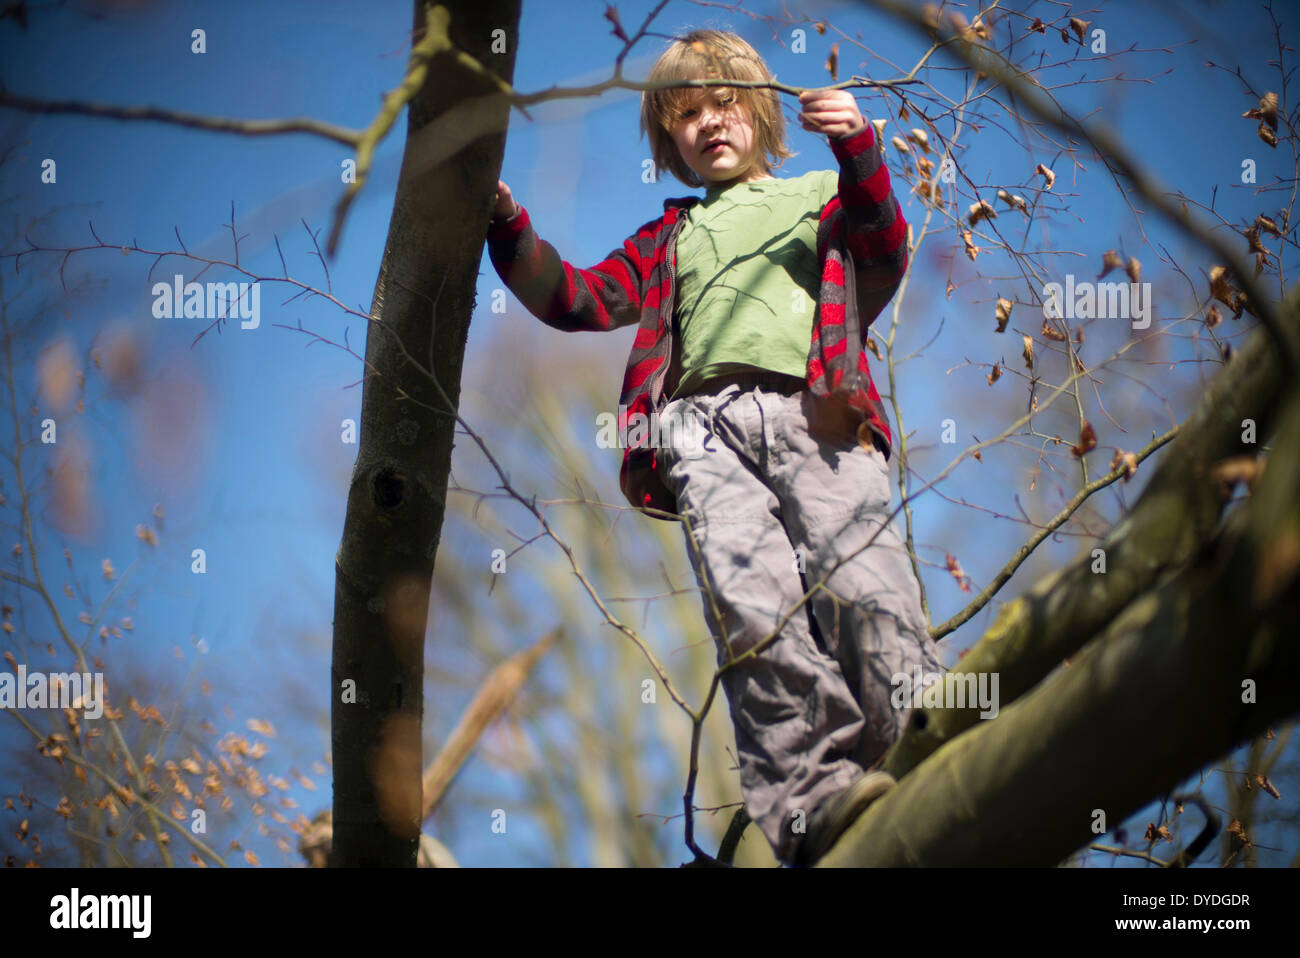 Seven year old boy climbing a tree. - Stock Image